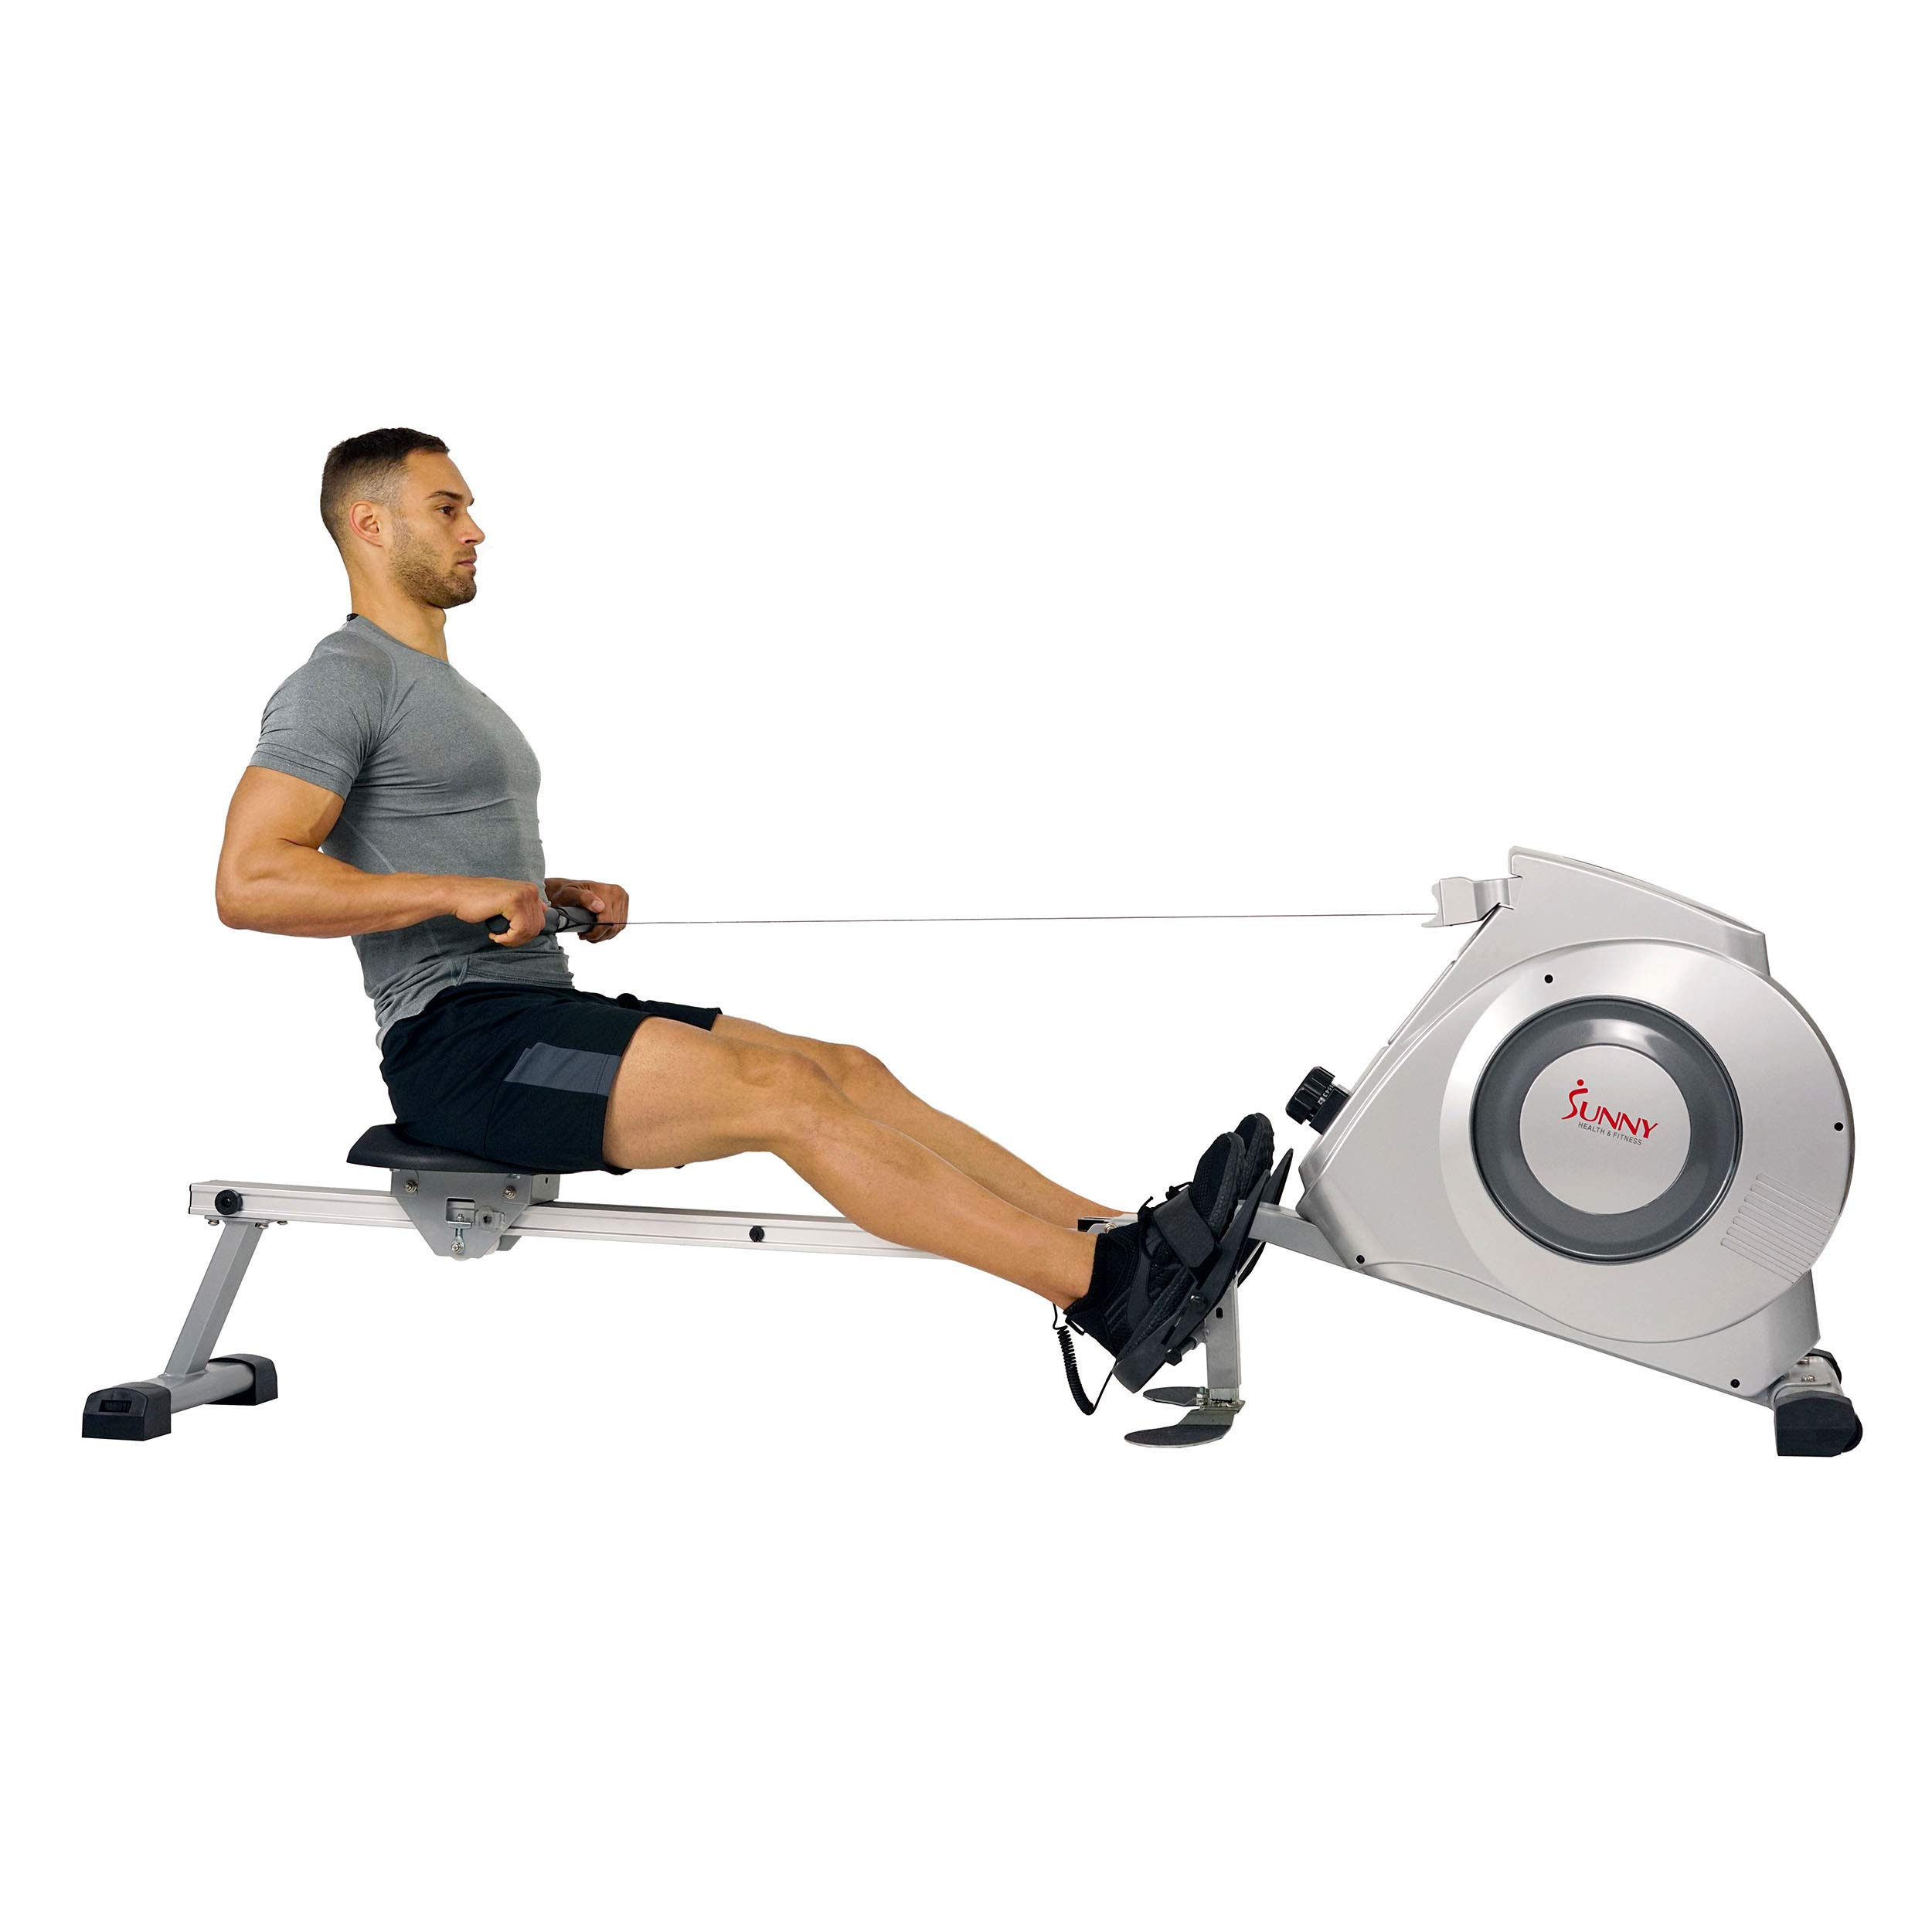 Sunny Health & Fitness Magnetic Rowing Machine w/ Digital Monitor, 300 LB Weight Capacity, Dual Function Multi-Exercise Foot Plates and Portability Wheels -  SF-RW5612